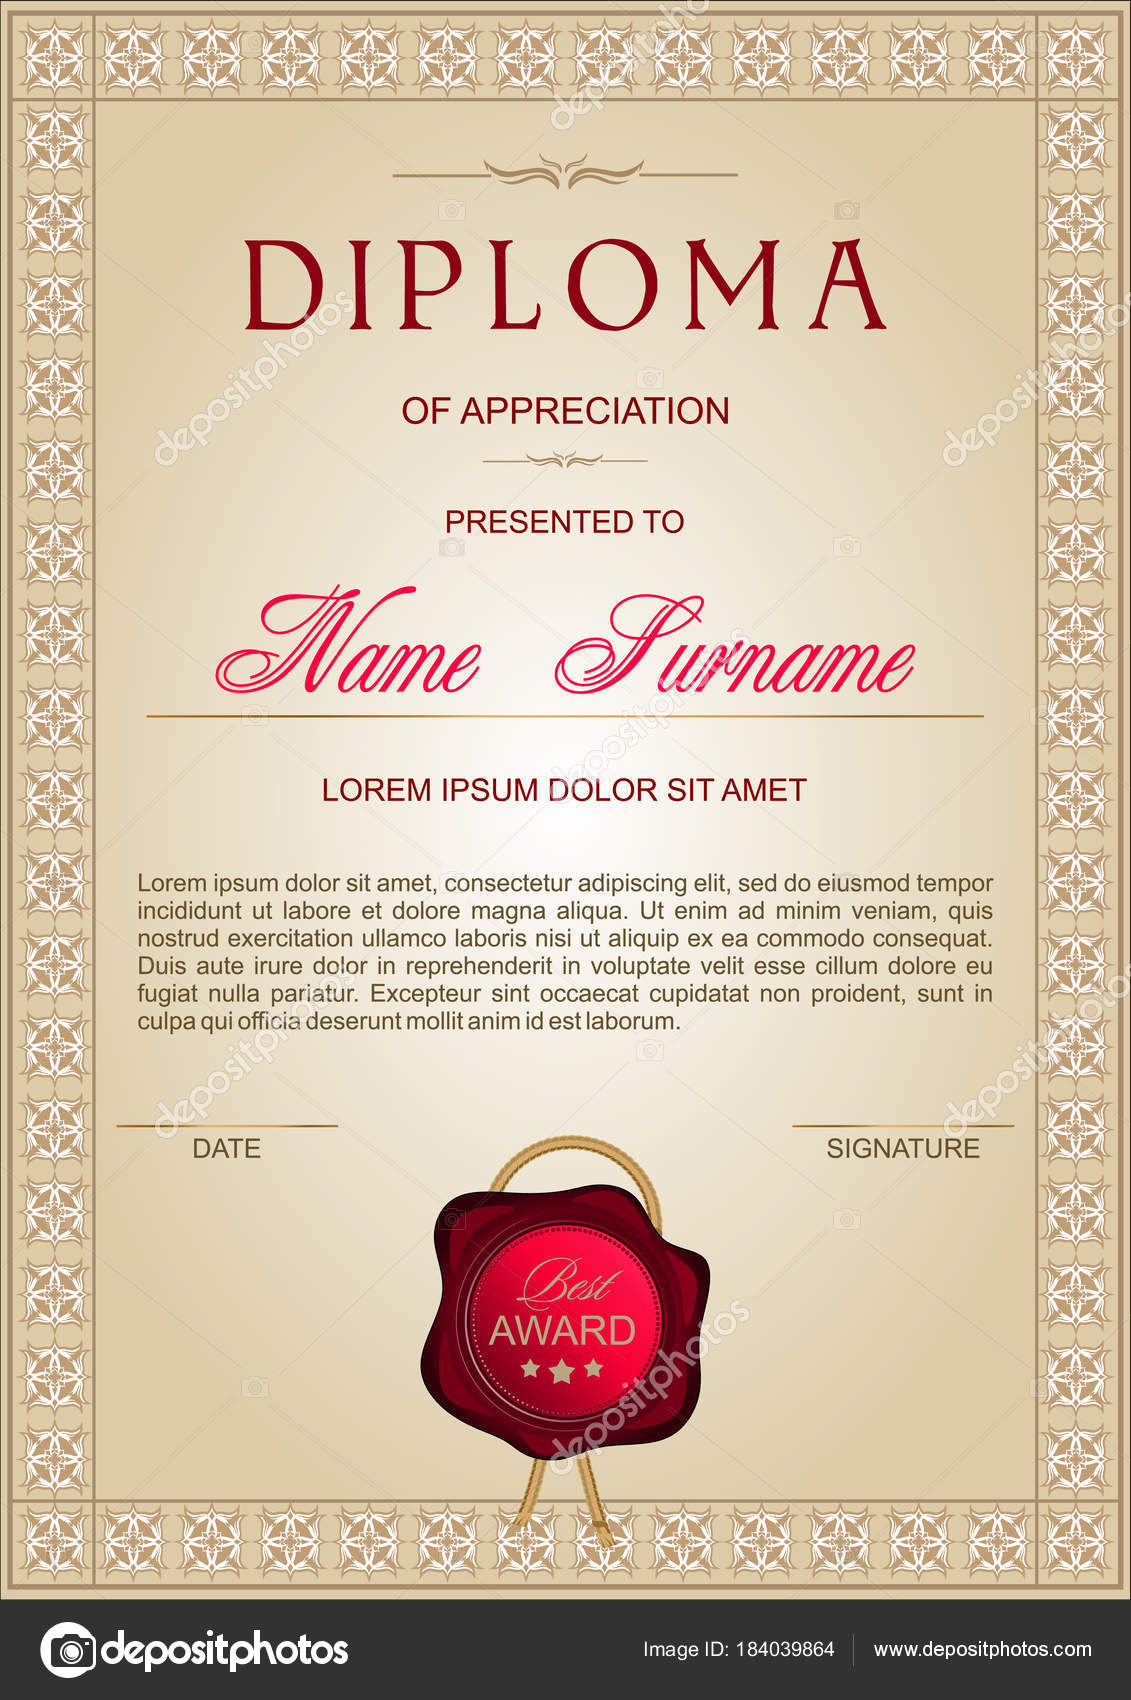 diploma vertical format golden beige shades classic elegant style